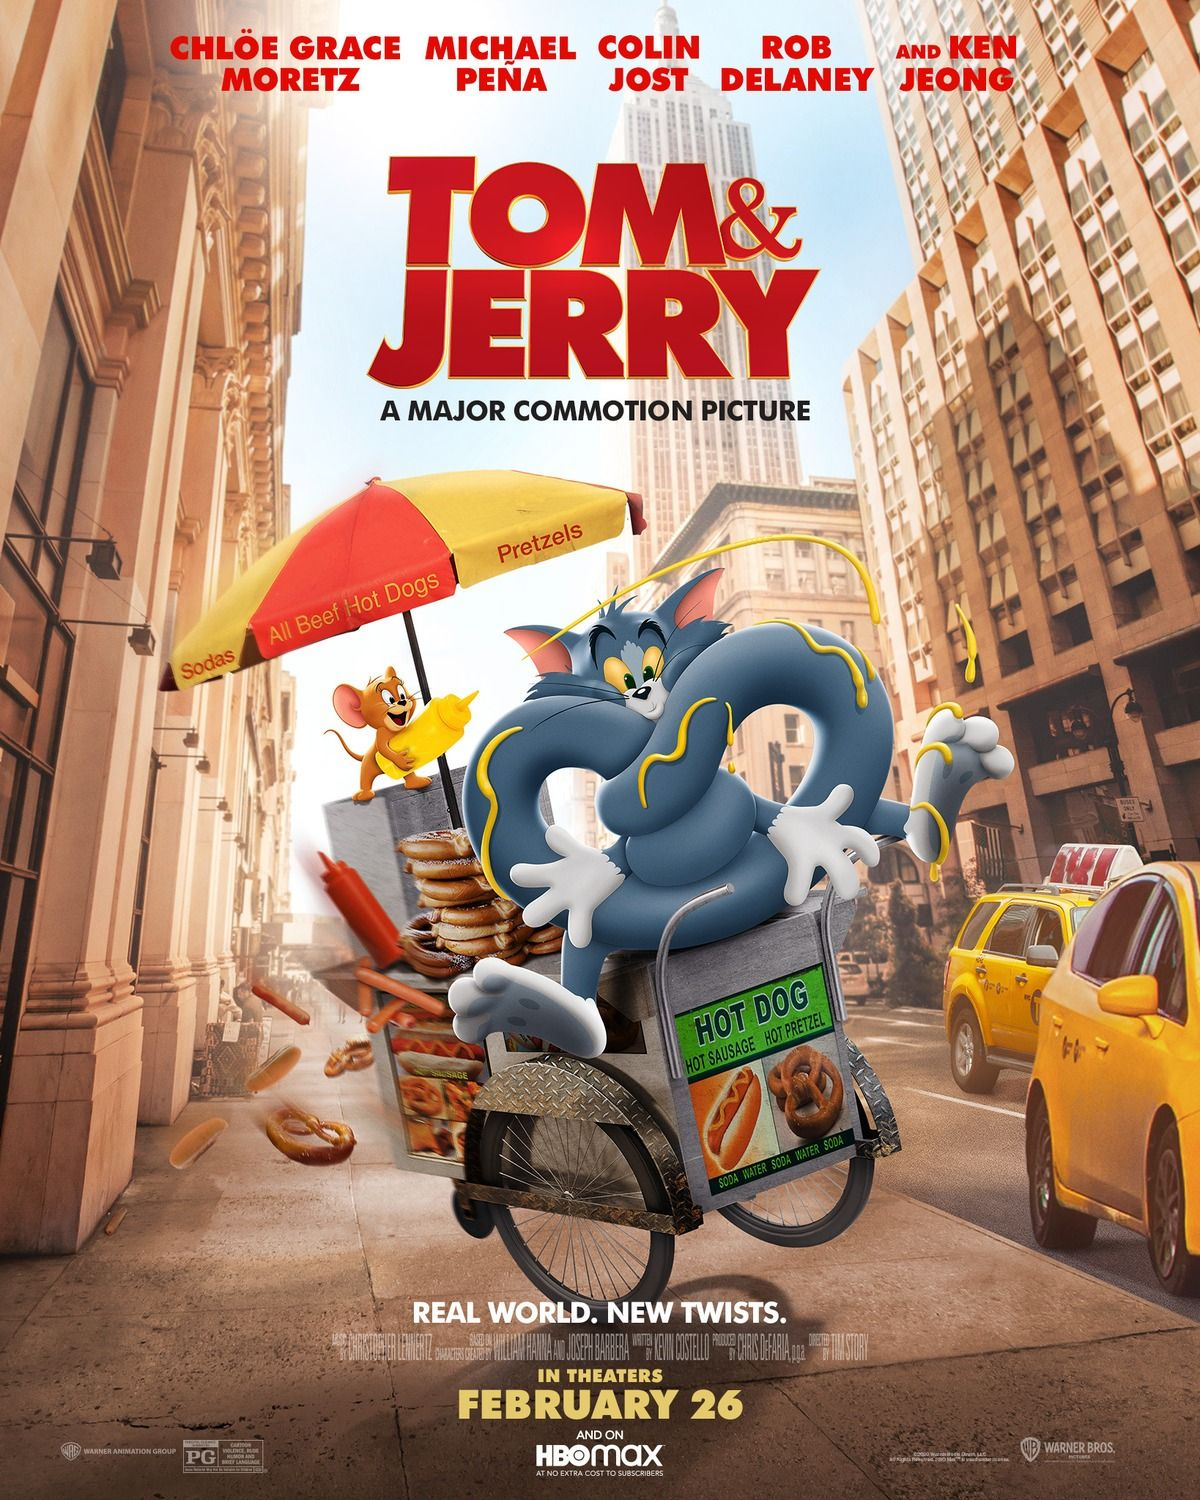 Tom Jerry 2021 New Film Posters In 2021 Tom And Jerry Movies Tom And Jerry Toms